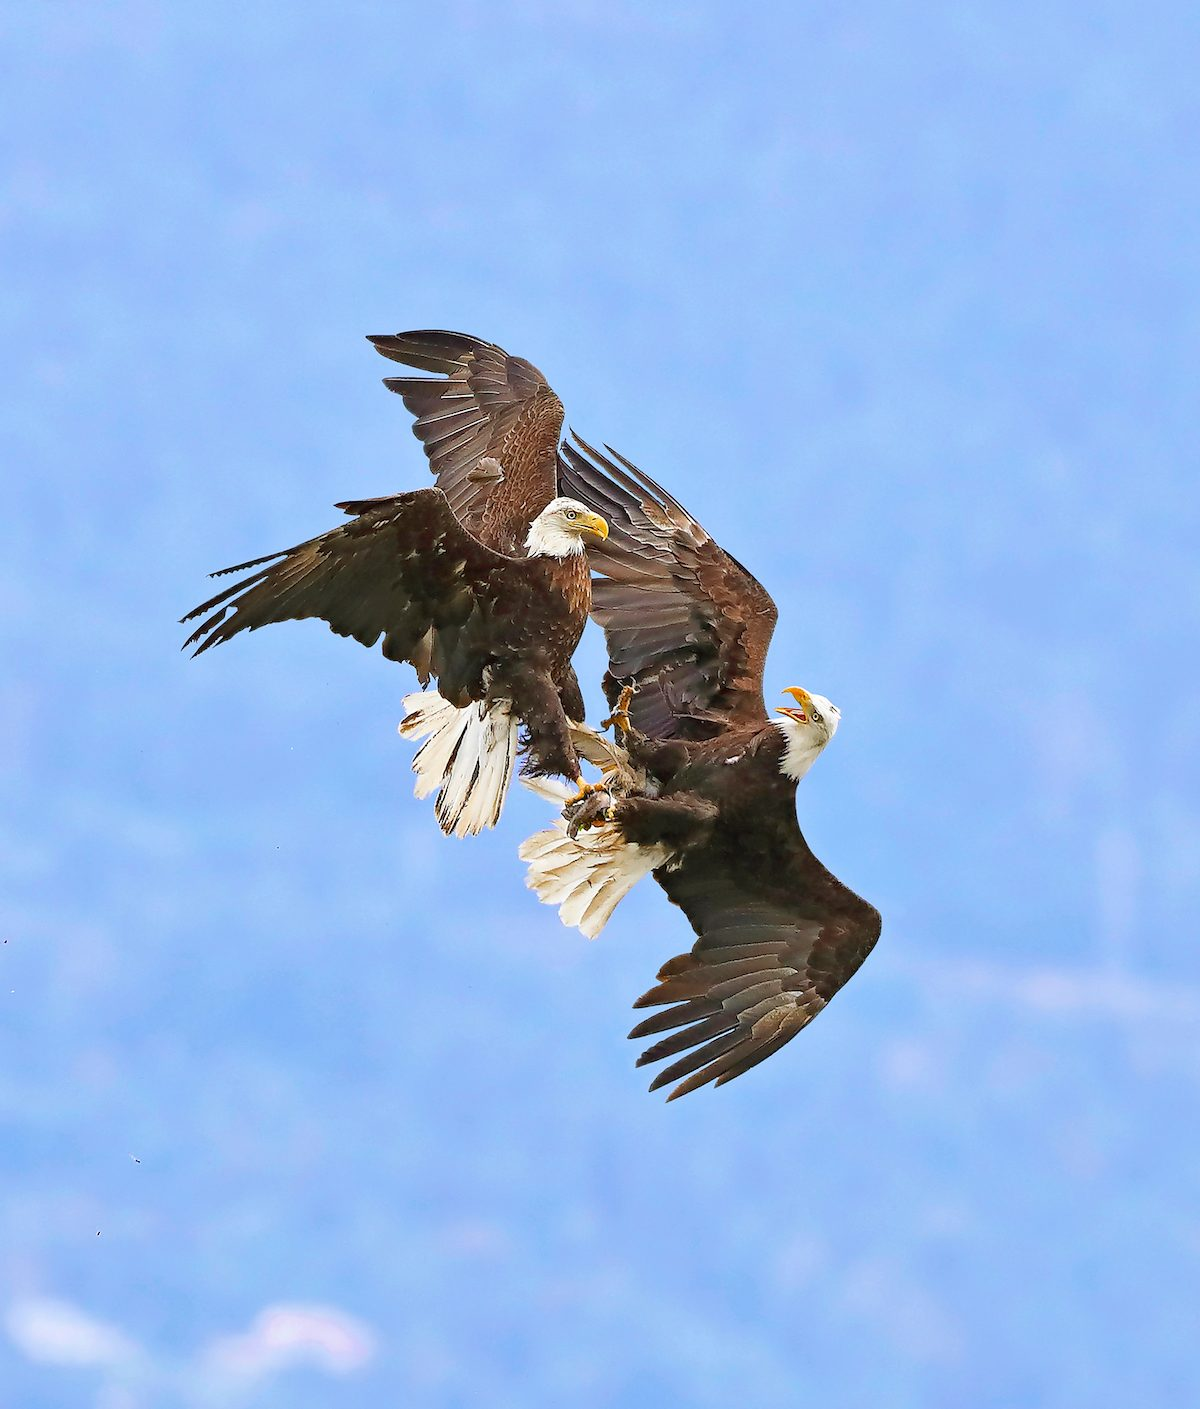 Two bald eagles locking talons in mating ritual.